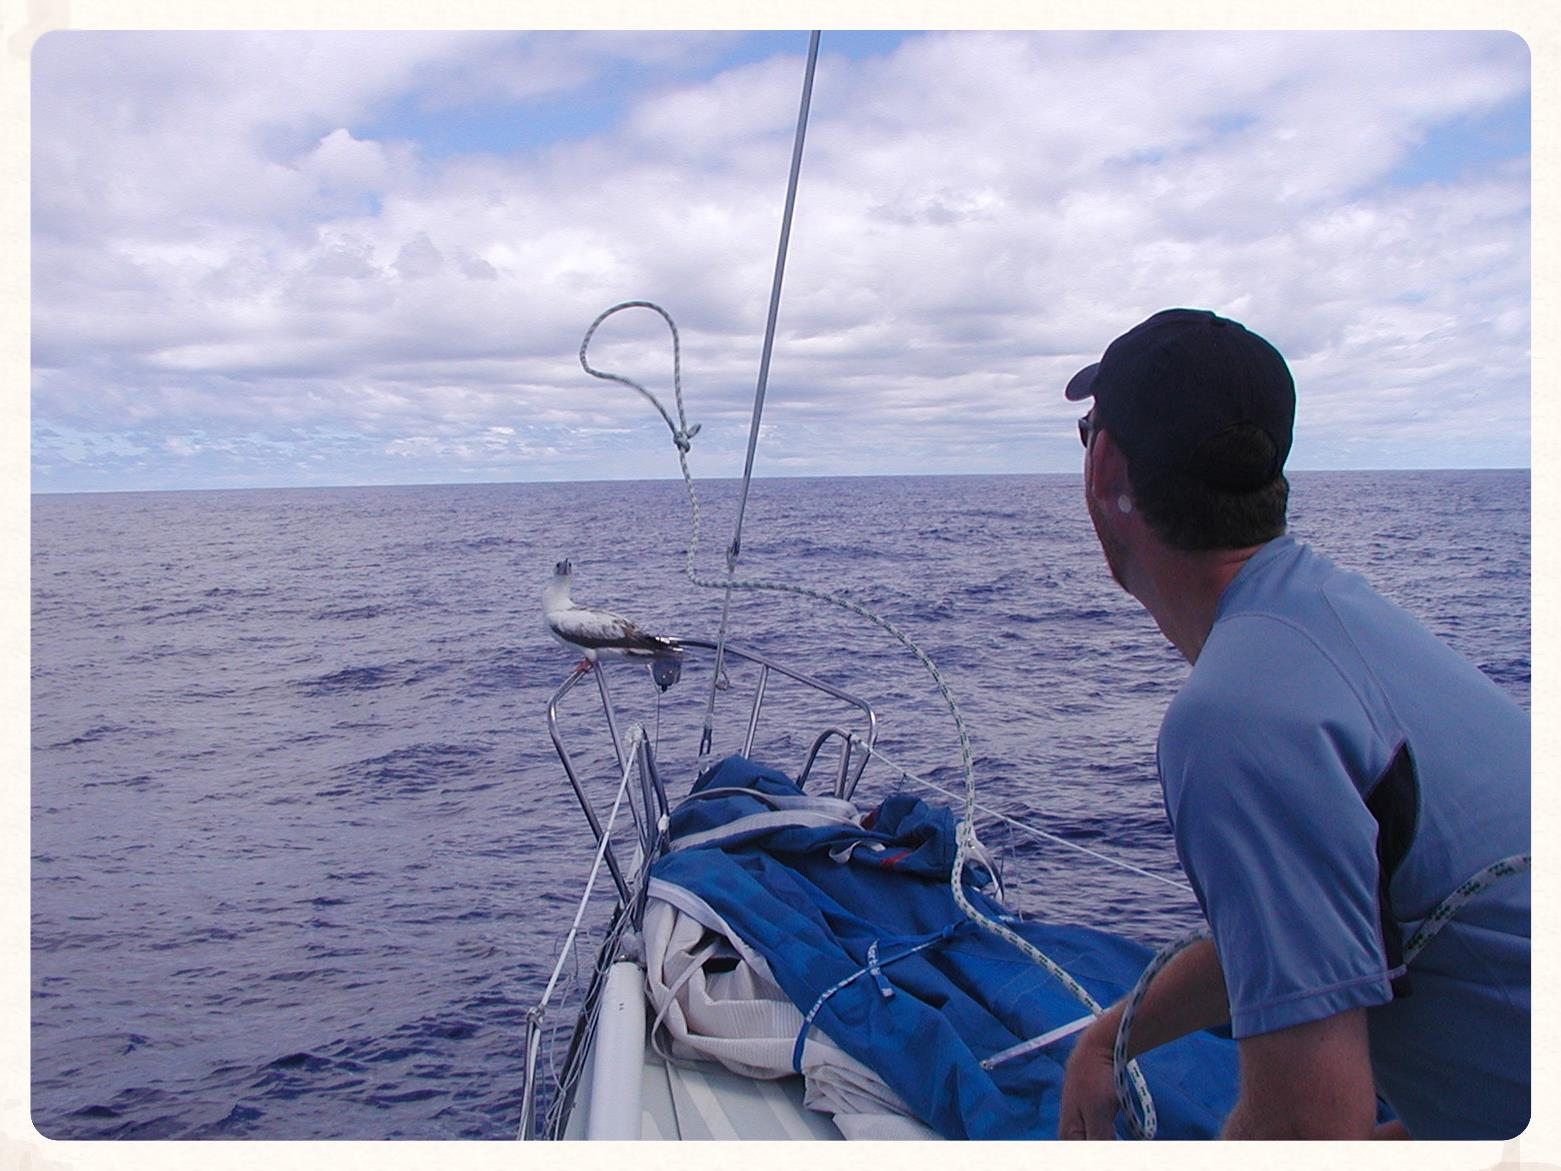 Me attempting to catch a bird - North Pacific Ocean